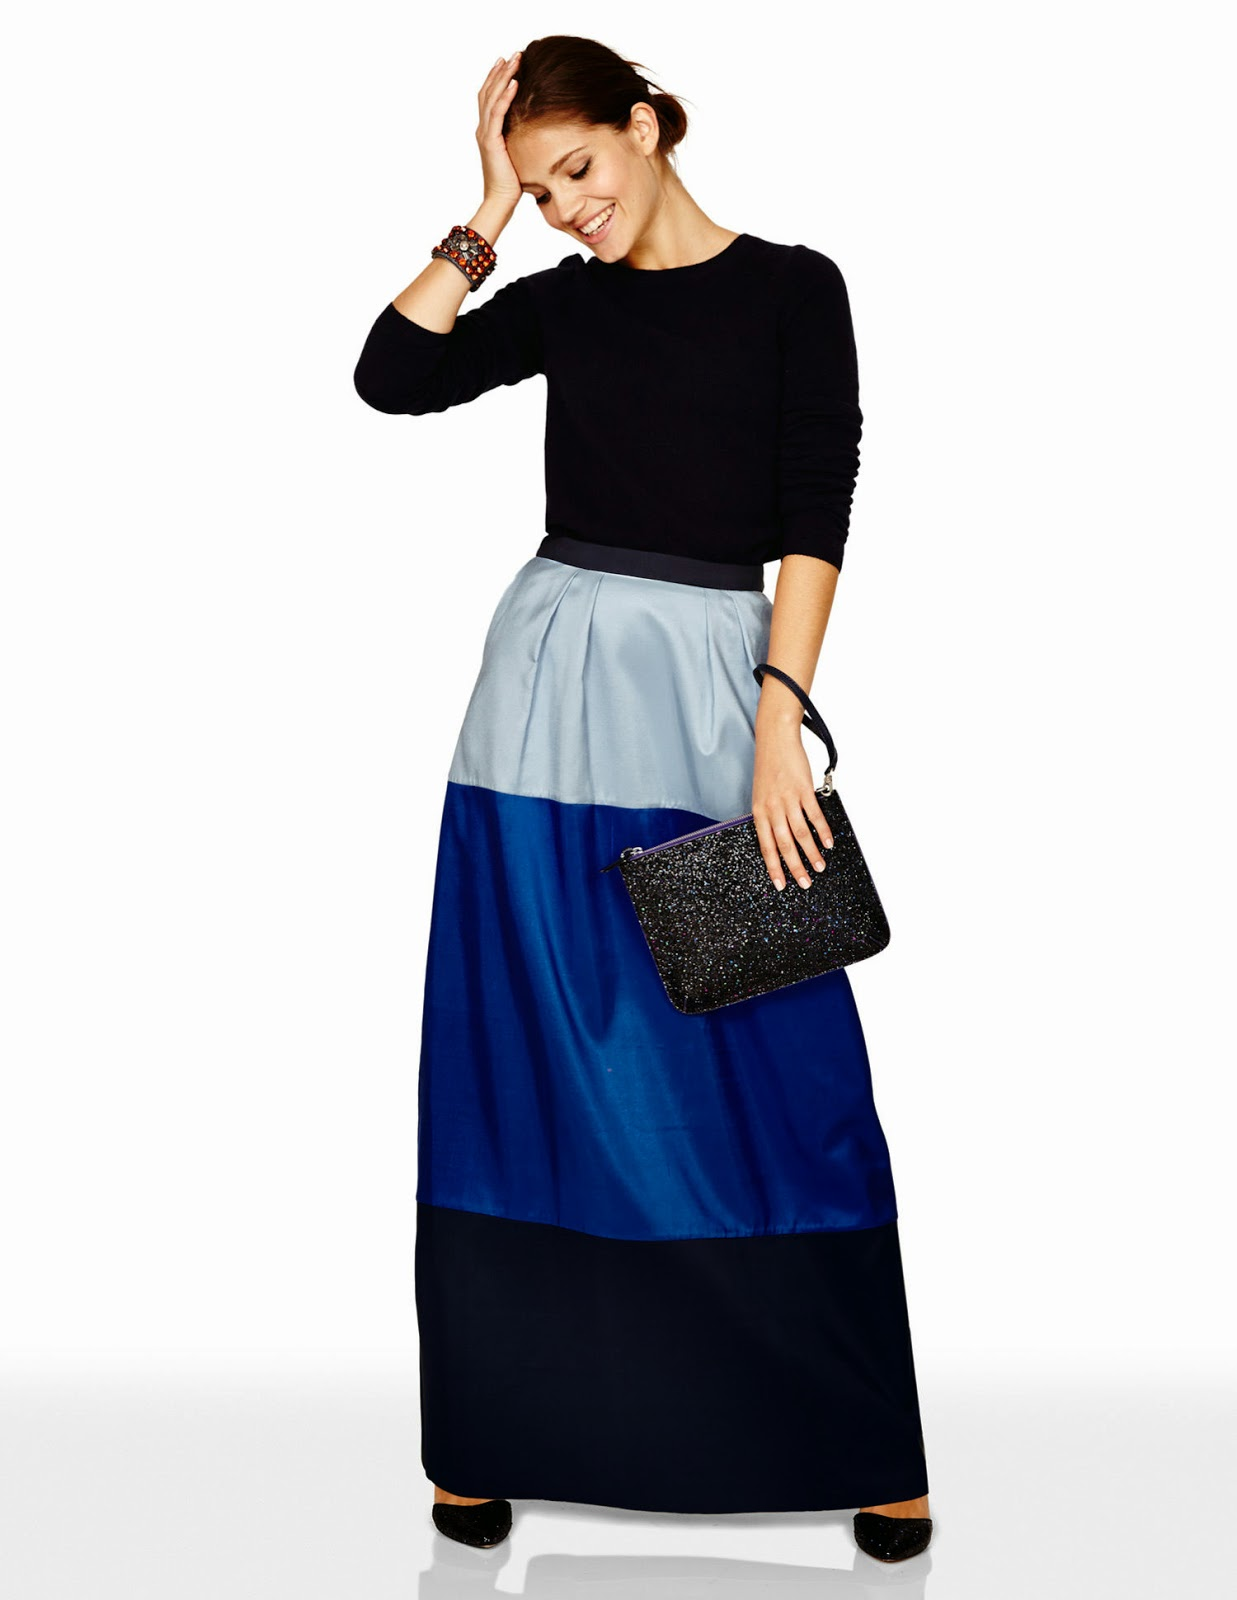 Bold colorful maxi skirt | Follow Mode-sty for stylish modest clothing #nolayering tznius orthodox jewish muslim hijab mormon lds pentecostal islamic evangelical christian